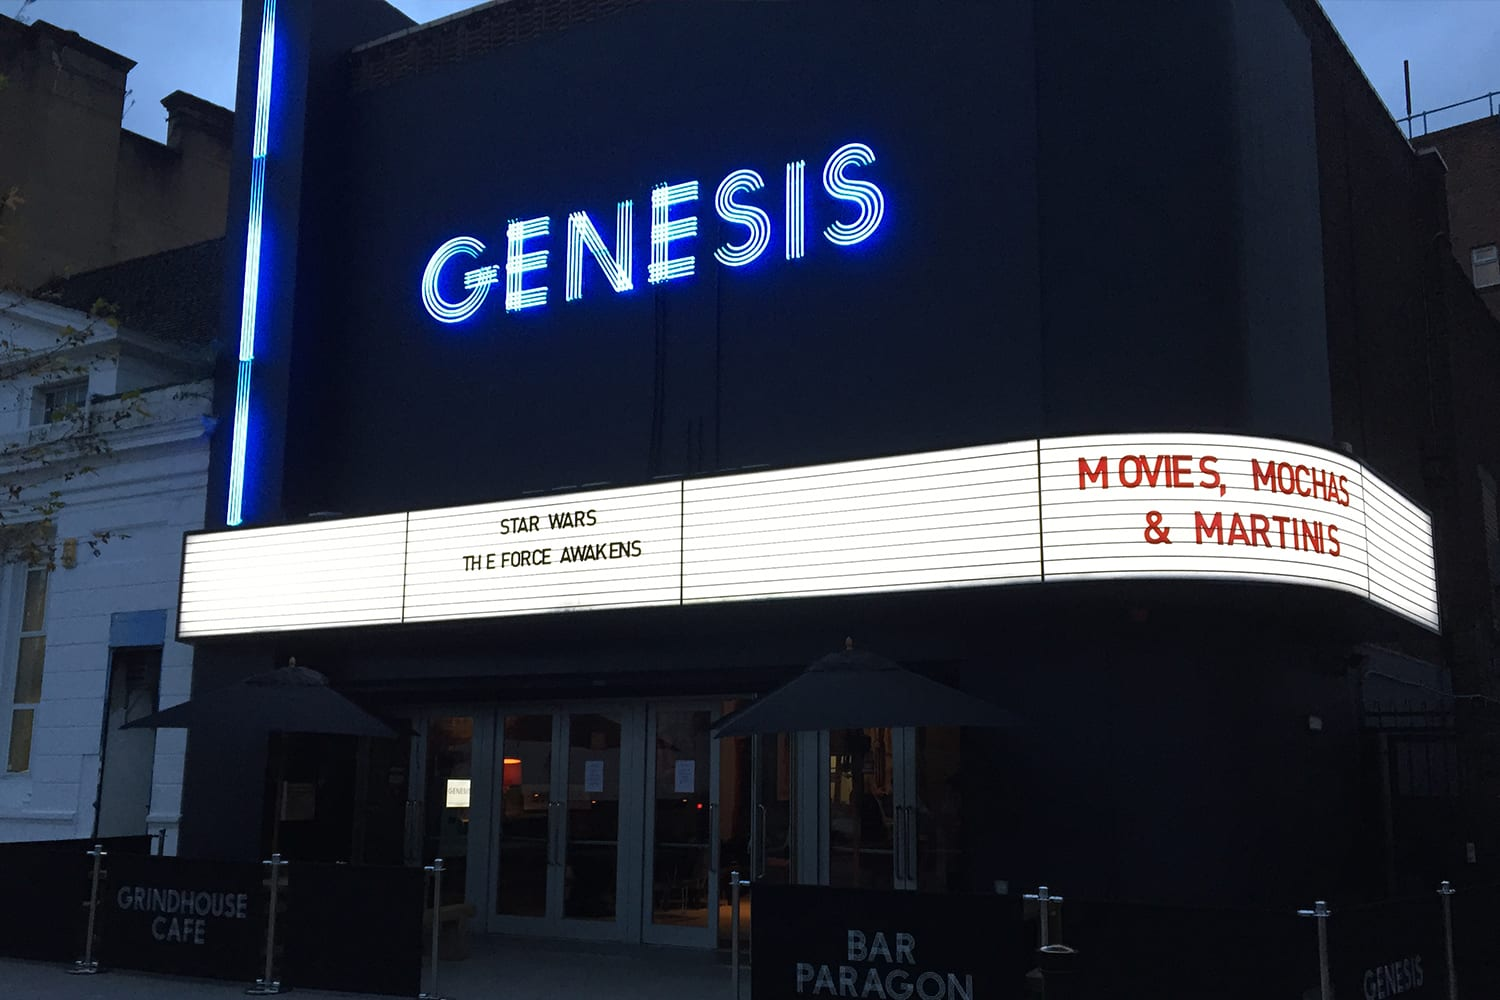 Genesis Cinema, Mile End Road, London